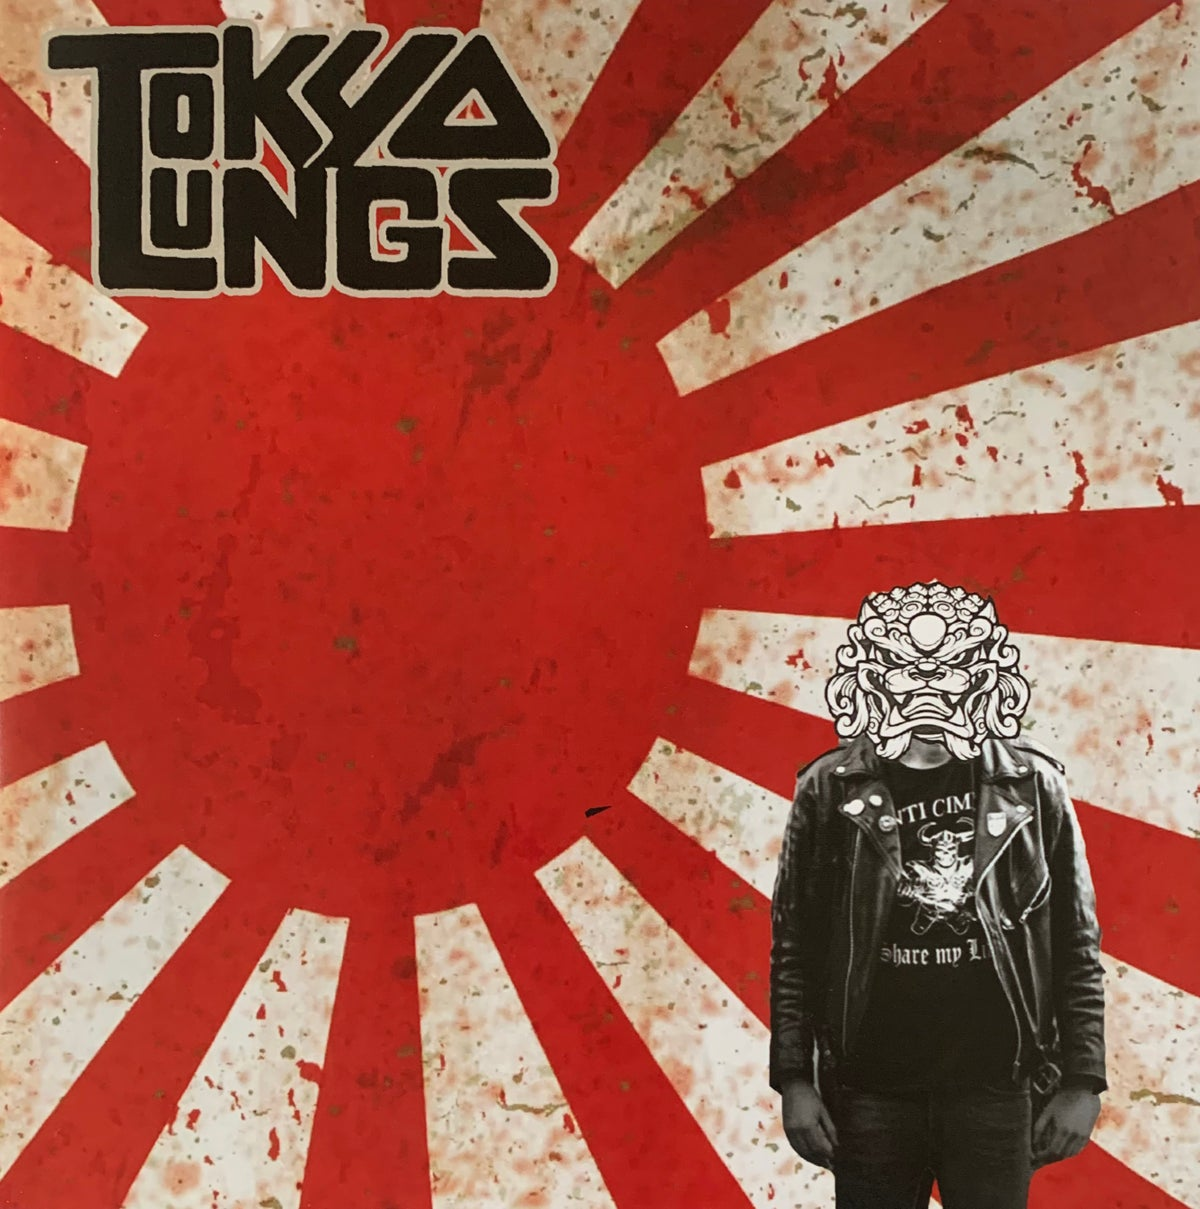 Image of Tokyo Lungs S/T EP black vinyl 7-inch record